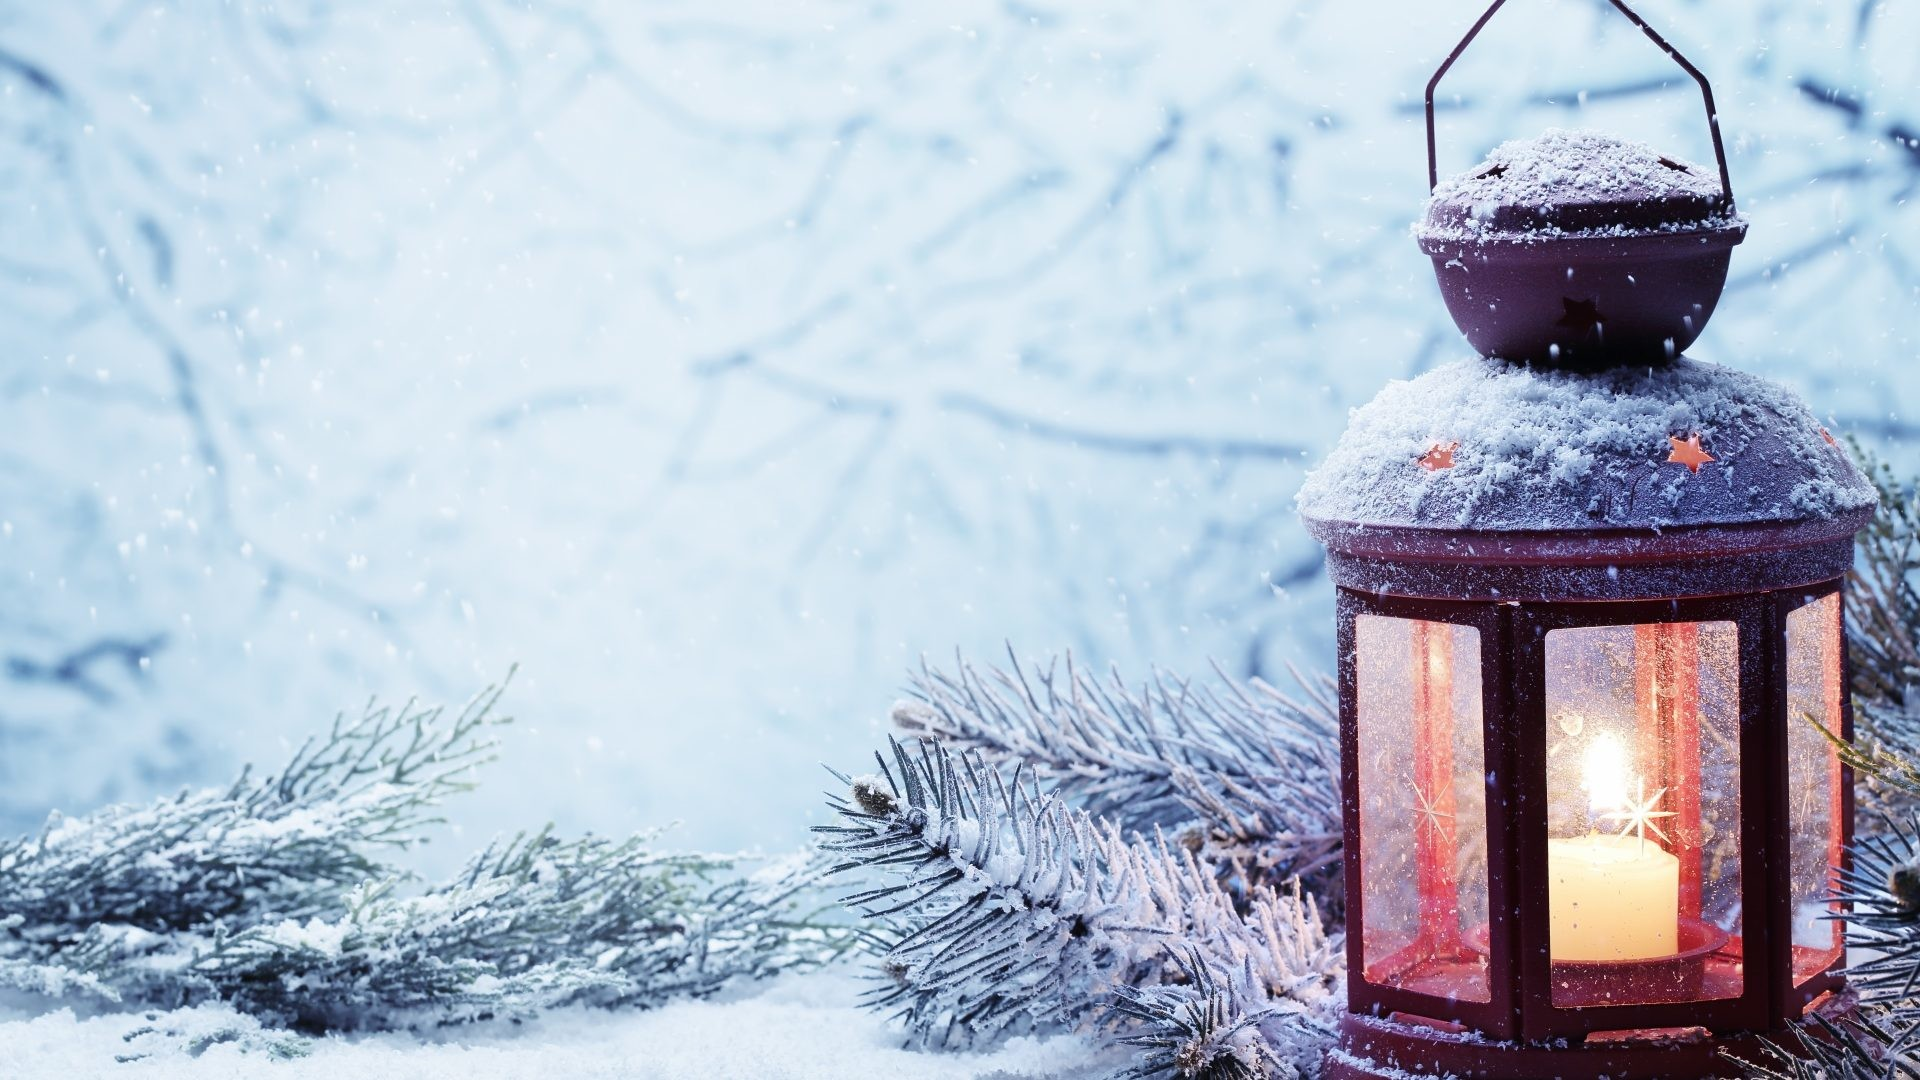 August 25, 2016 – Xmas Christmas Snow Winter Lantern Wallpaper Download for  HD 16: